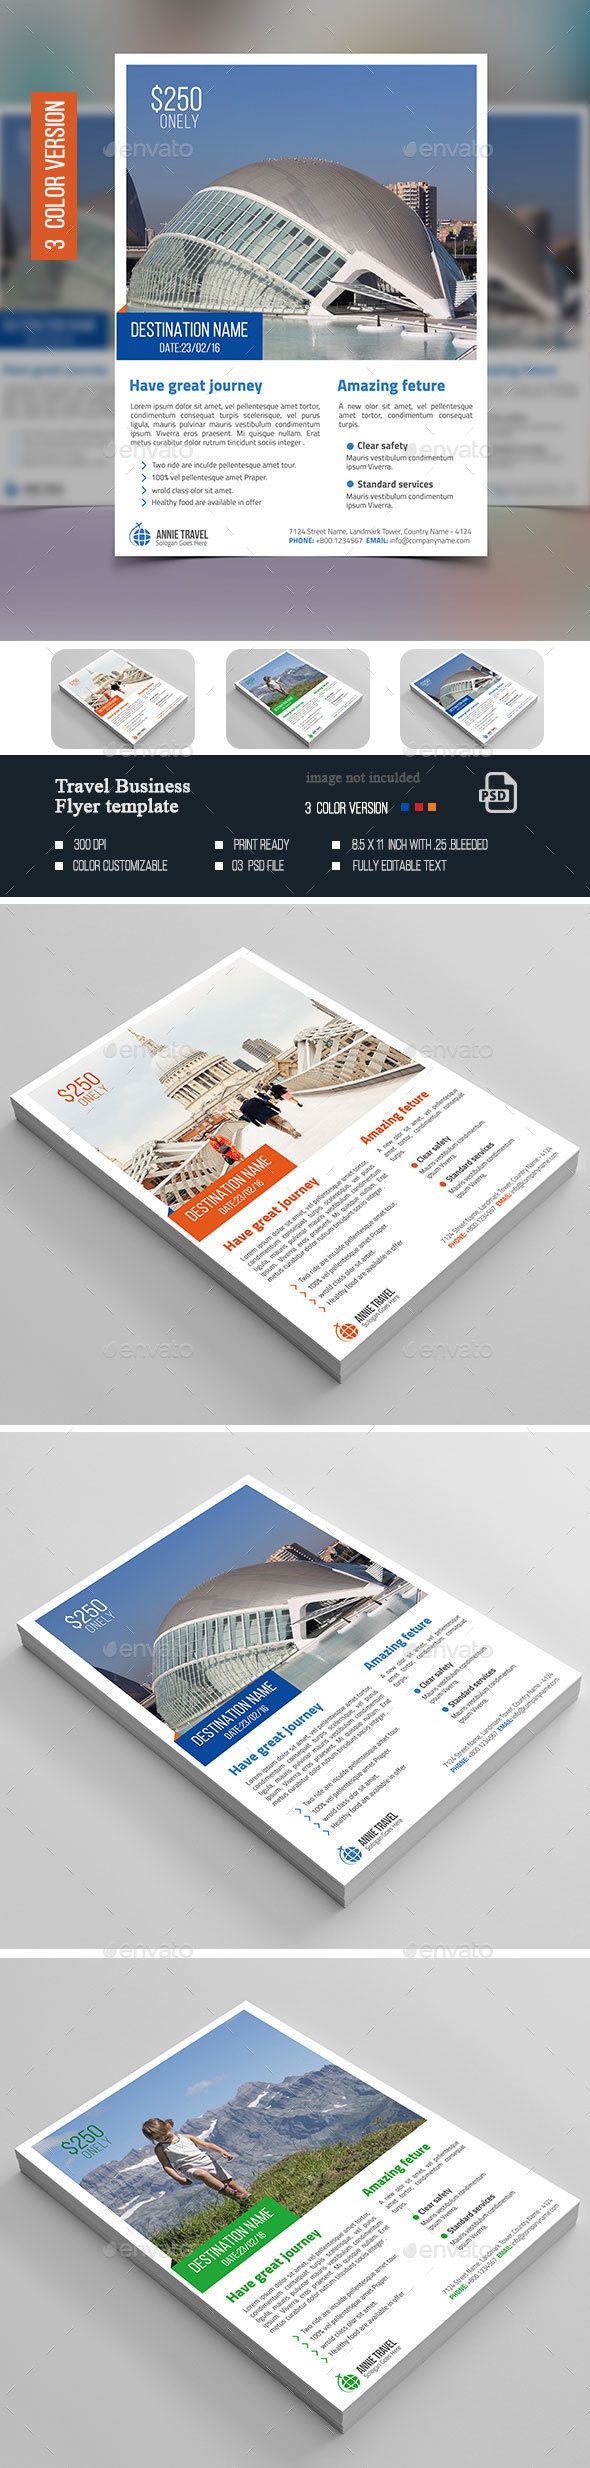 Travel Business Flyer  - Flyers Print Templates